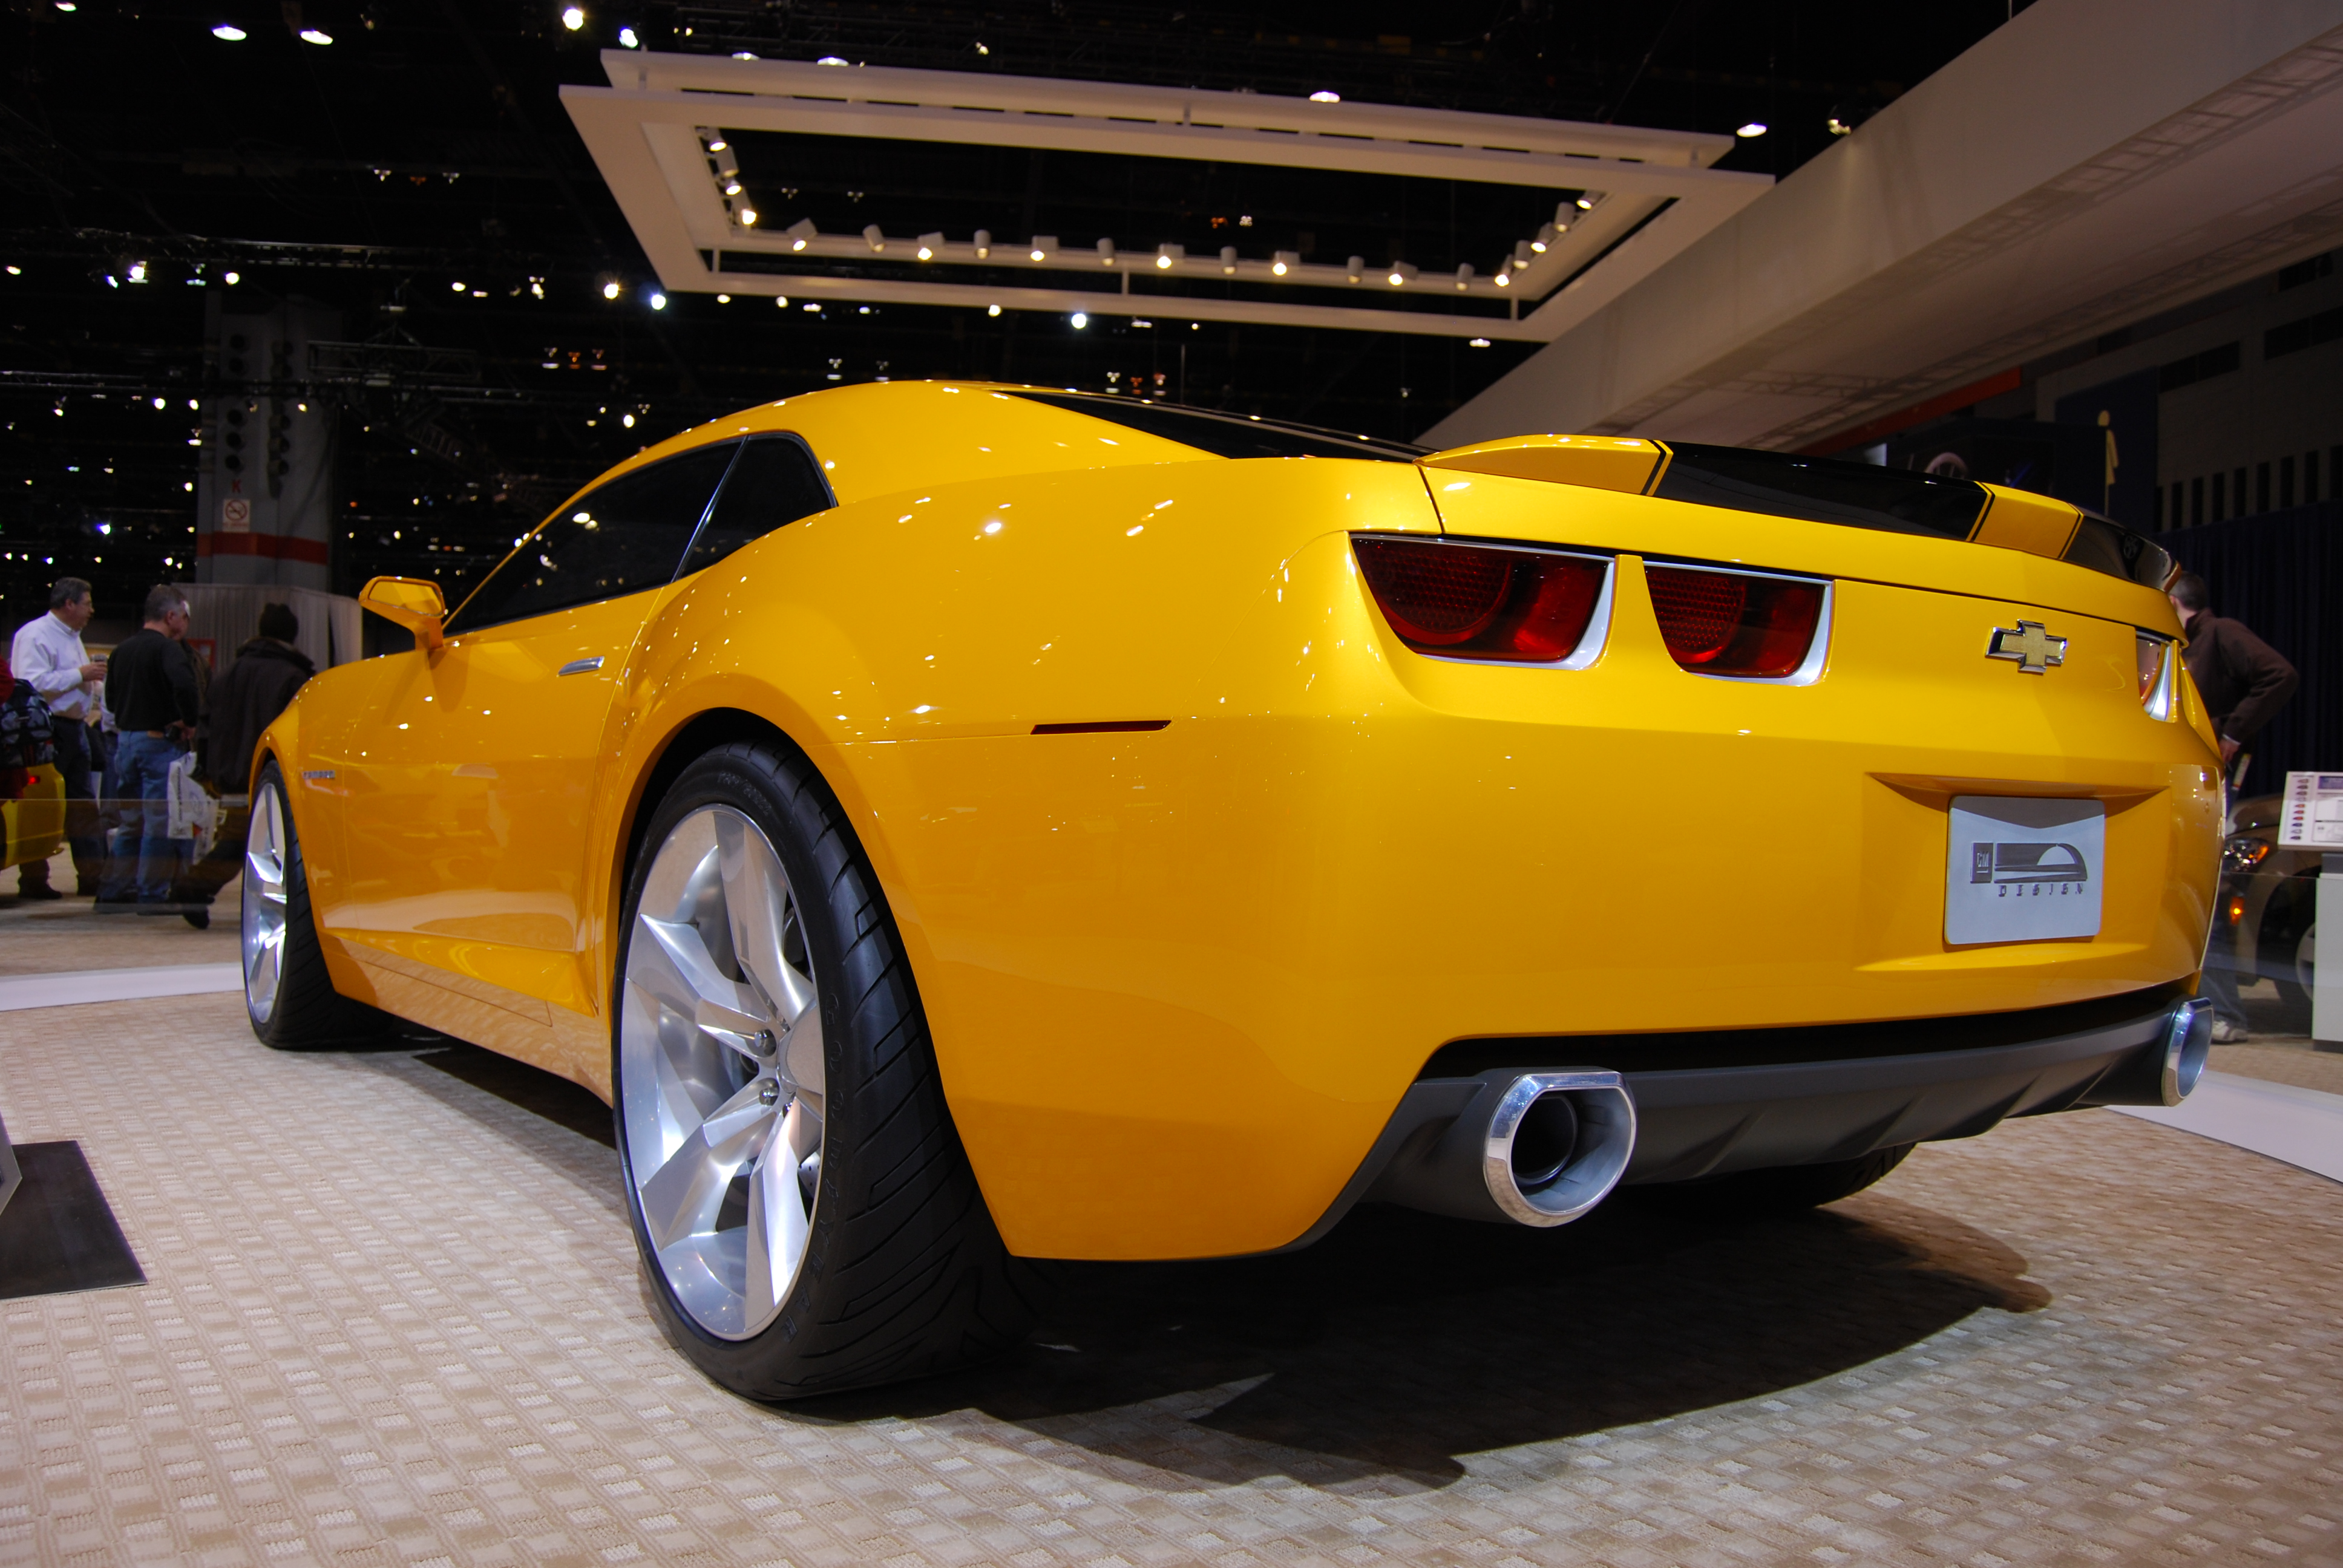 Camaro bublebee rear 5th generation wallpaper for iphone wallpaper